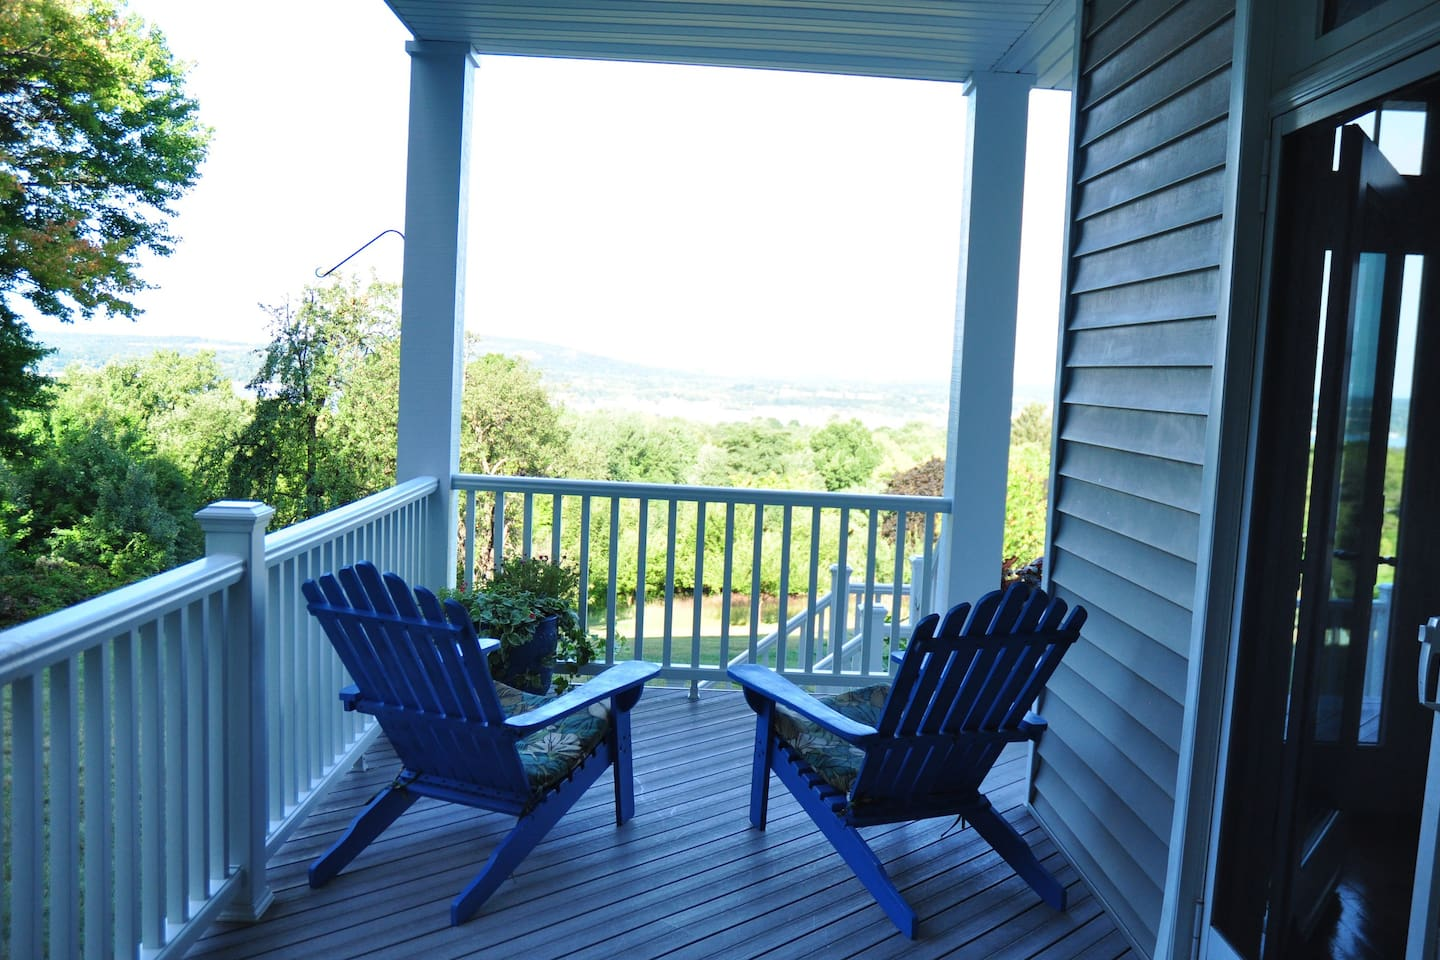 Enjoy your morning coffee on the porch with a view of the Hudson, or watch the sunset in the evening.